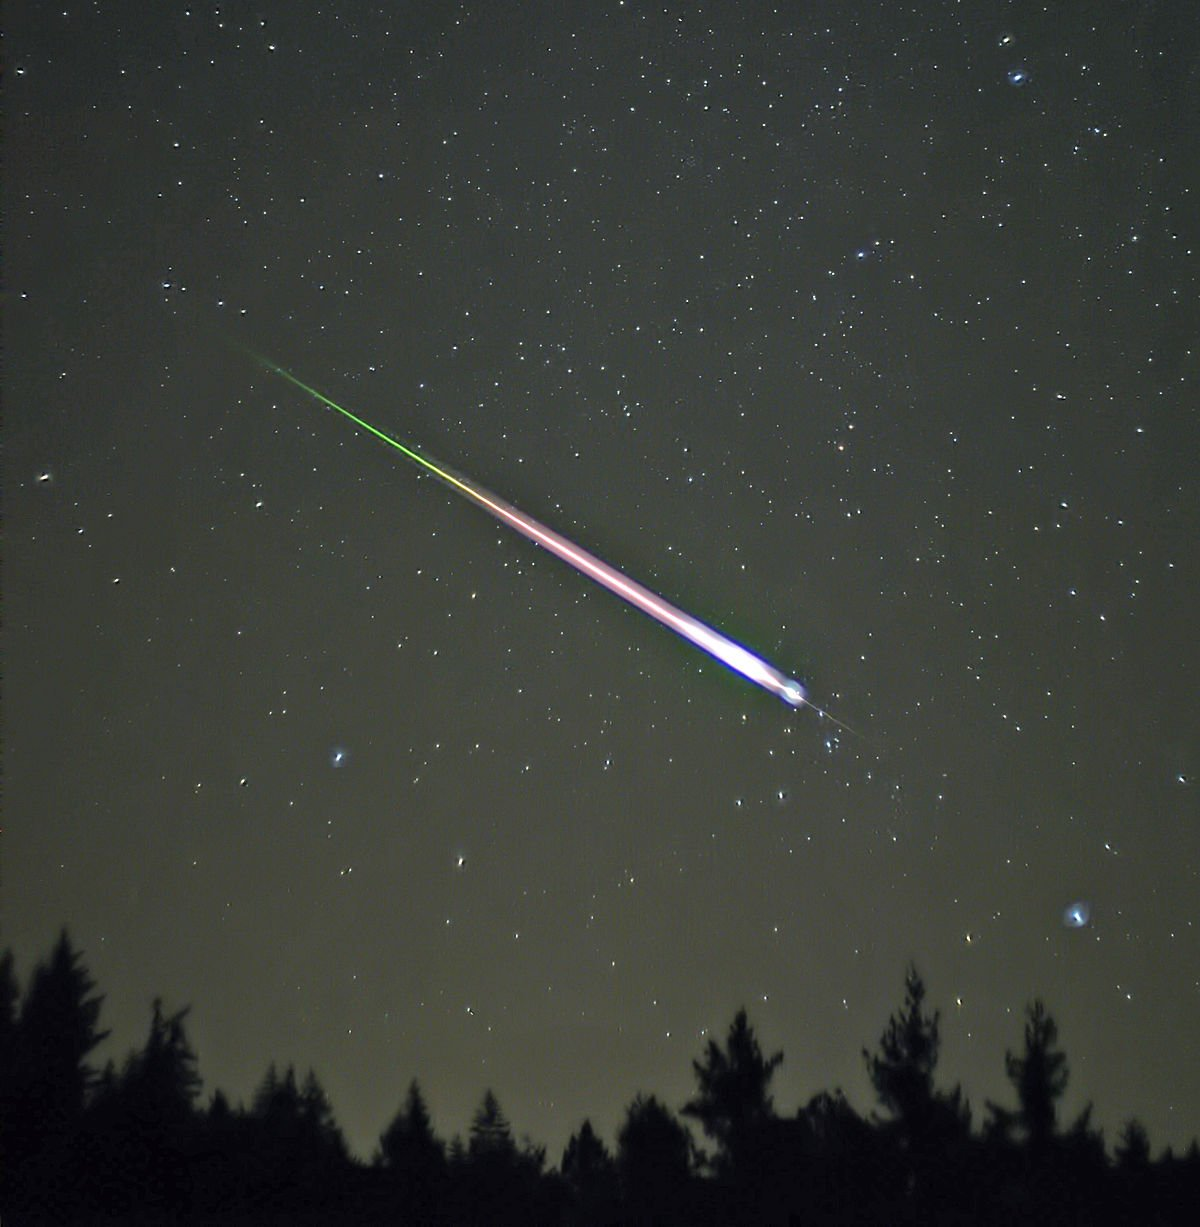 Leonid meteor shower peaks Friday and Saturday